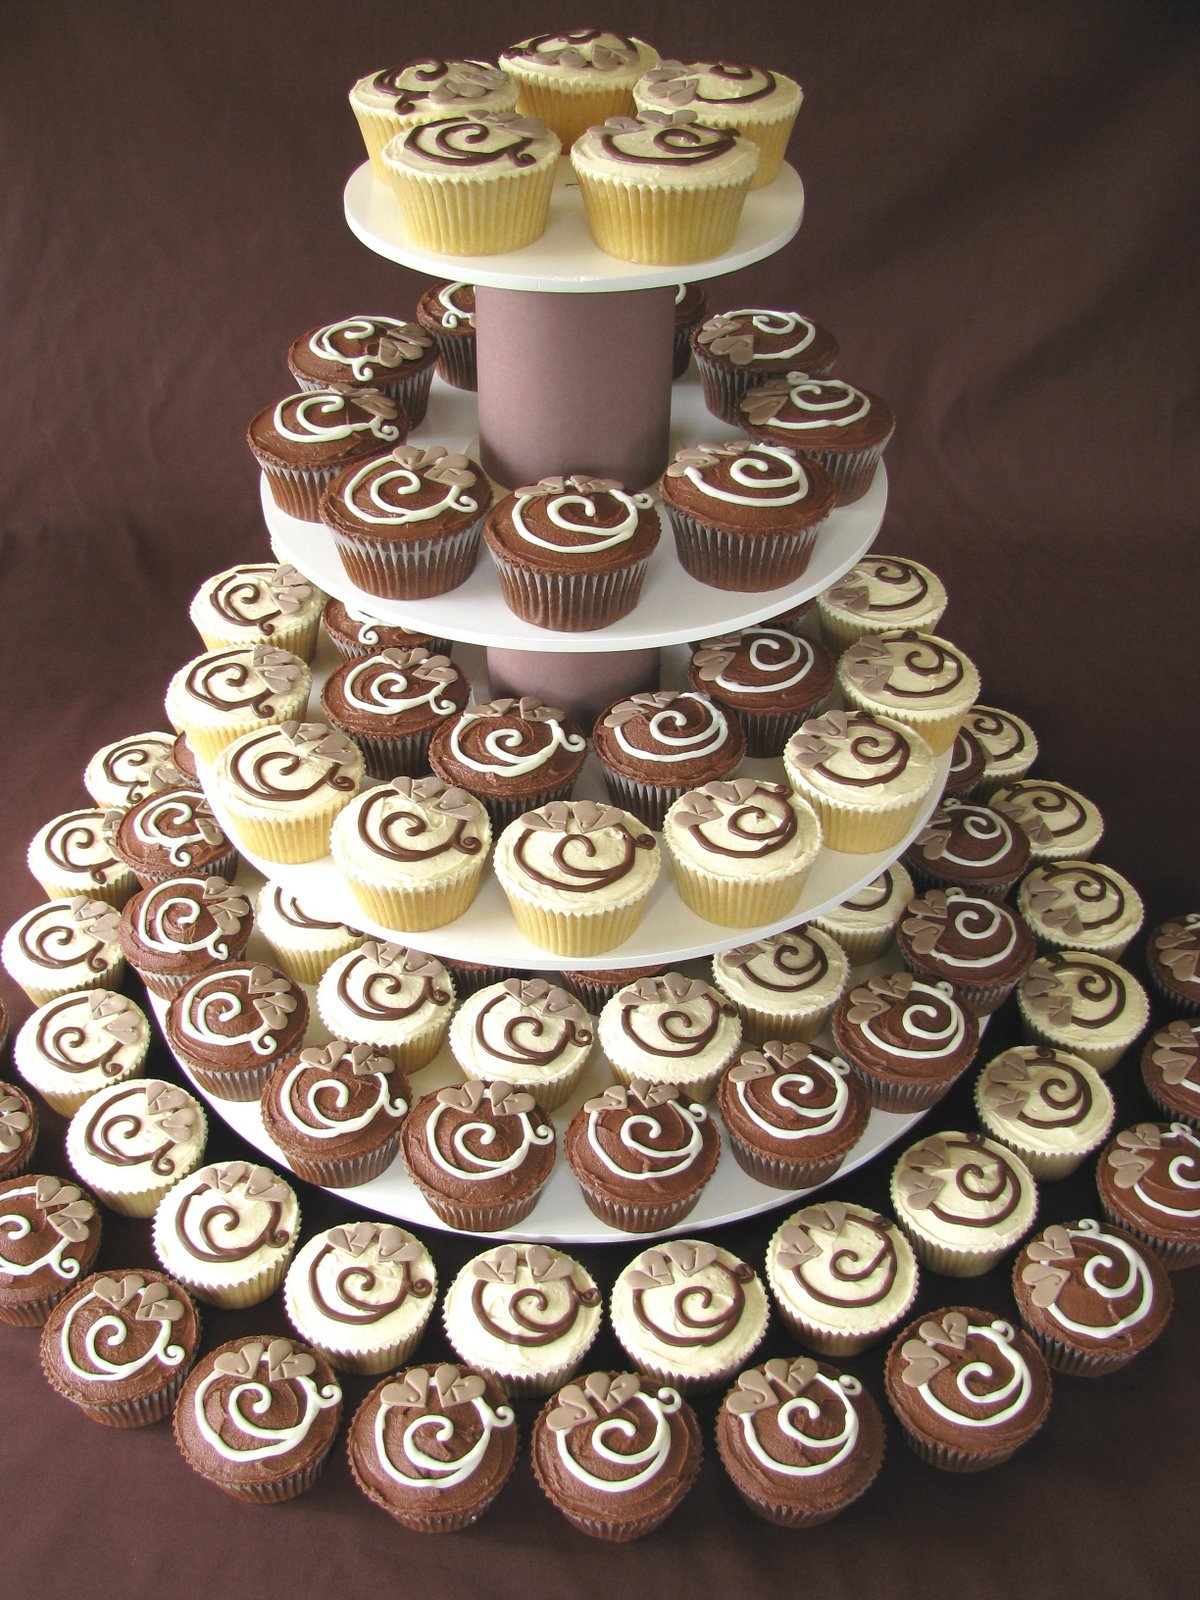 30 Luscious Wedding Cupcakes Choco Vanilla Wedding Cupcakes